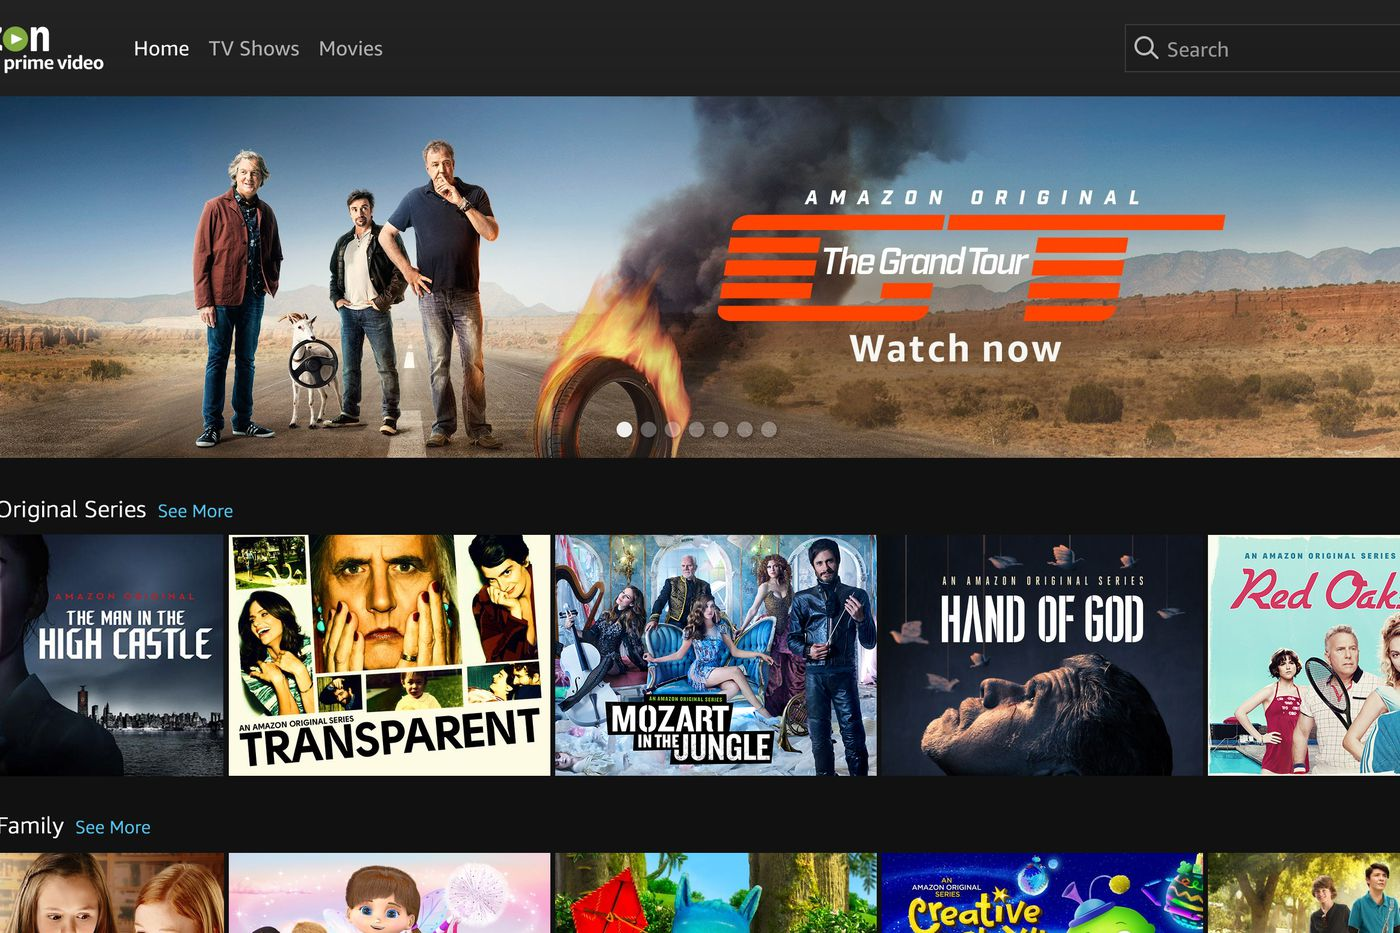 Amazon's Prime Video is now available in more than 200 countries - The Verge